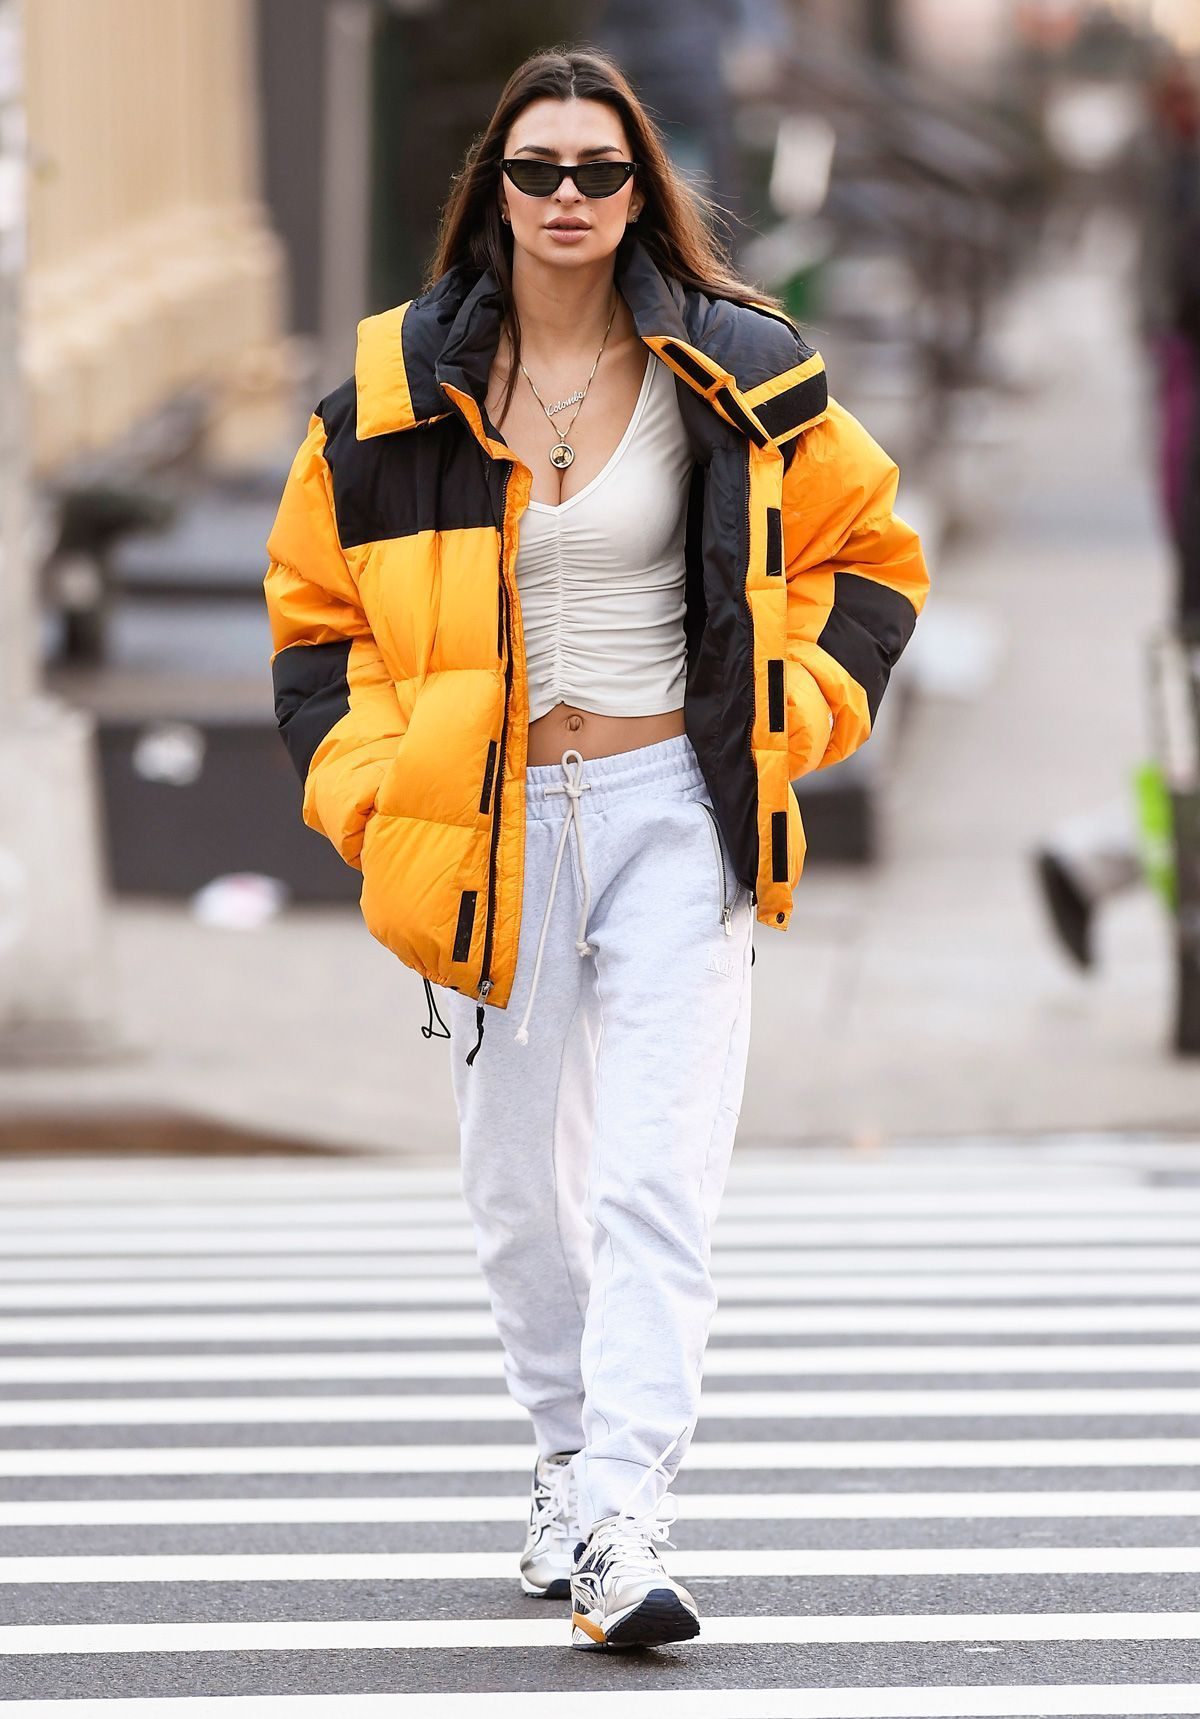 6 Ways To Style North Face Jackets Like Jessica Biel Emrata And More Whowhatwear Com In 2020 North Face Puffer Jacket North Face Jacket Outfit North Face Jacket [ 1719 x 1200 Pixel ]